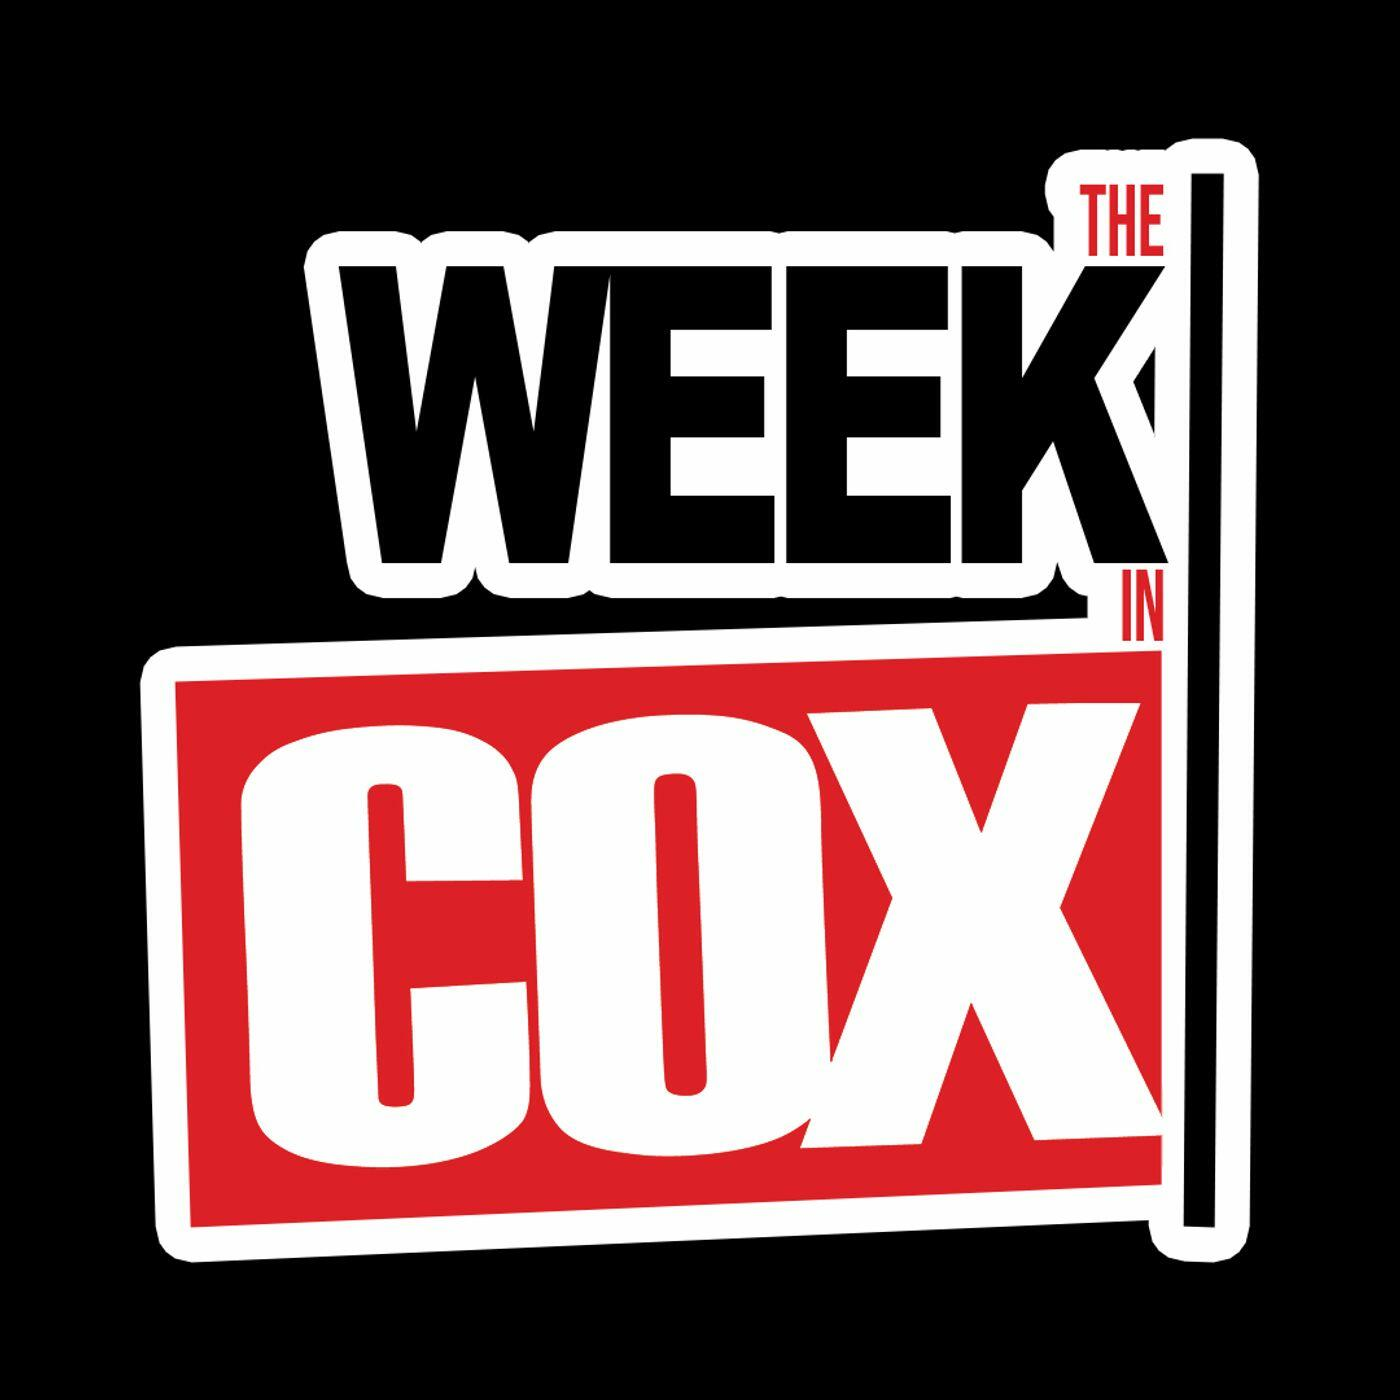 Episode 15: Sneaky Uplifting/ Trainspotting/ Cough Buffet/ Poundcake Personality Test/ Emotional Support Pig - The Week in Cox | iHeartRadio